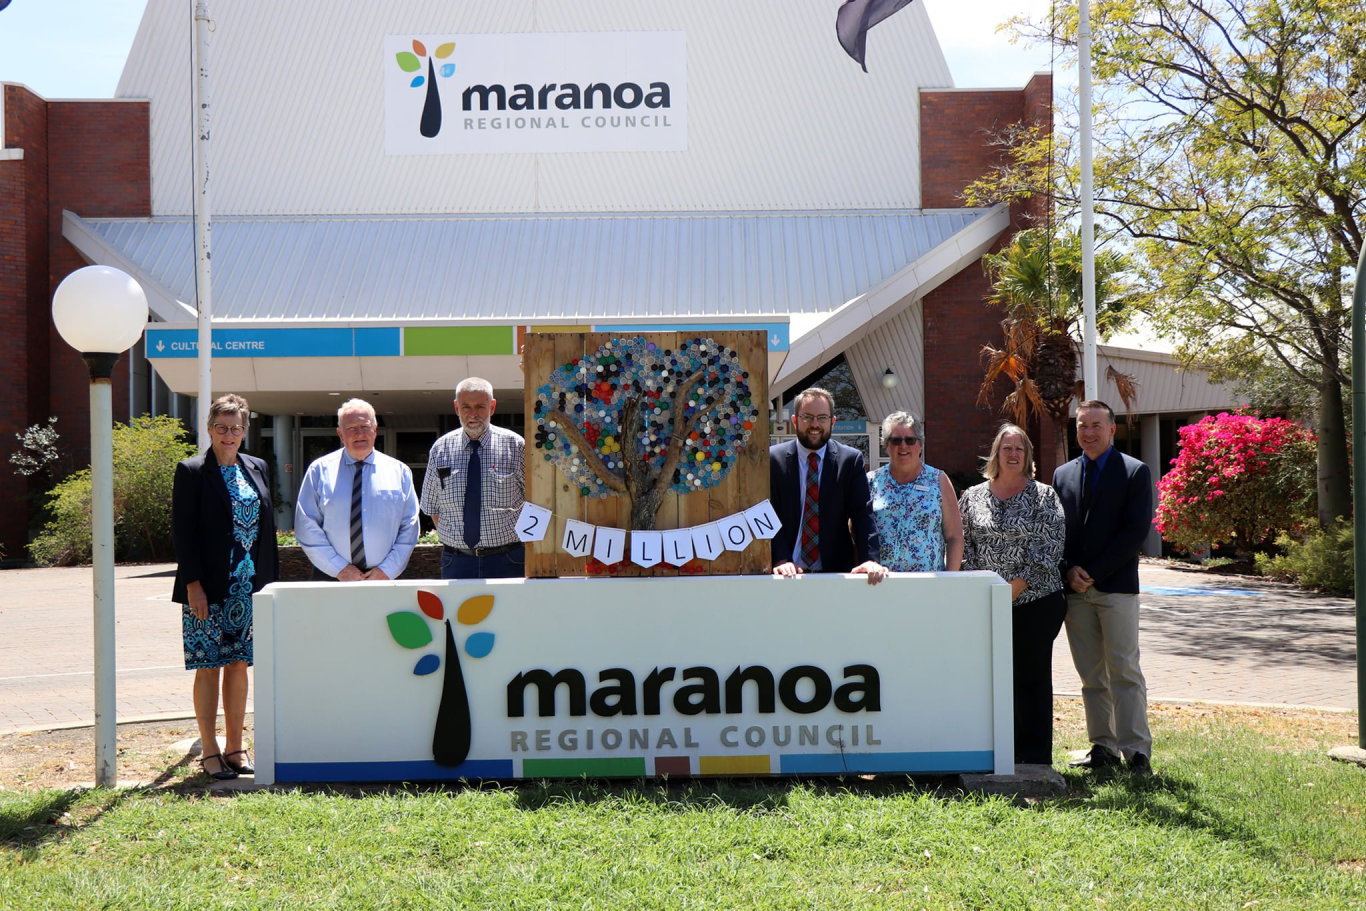 Maranoa Regional Council has marked a major milestone, having received 2million containers in 8 months.